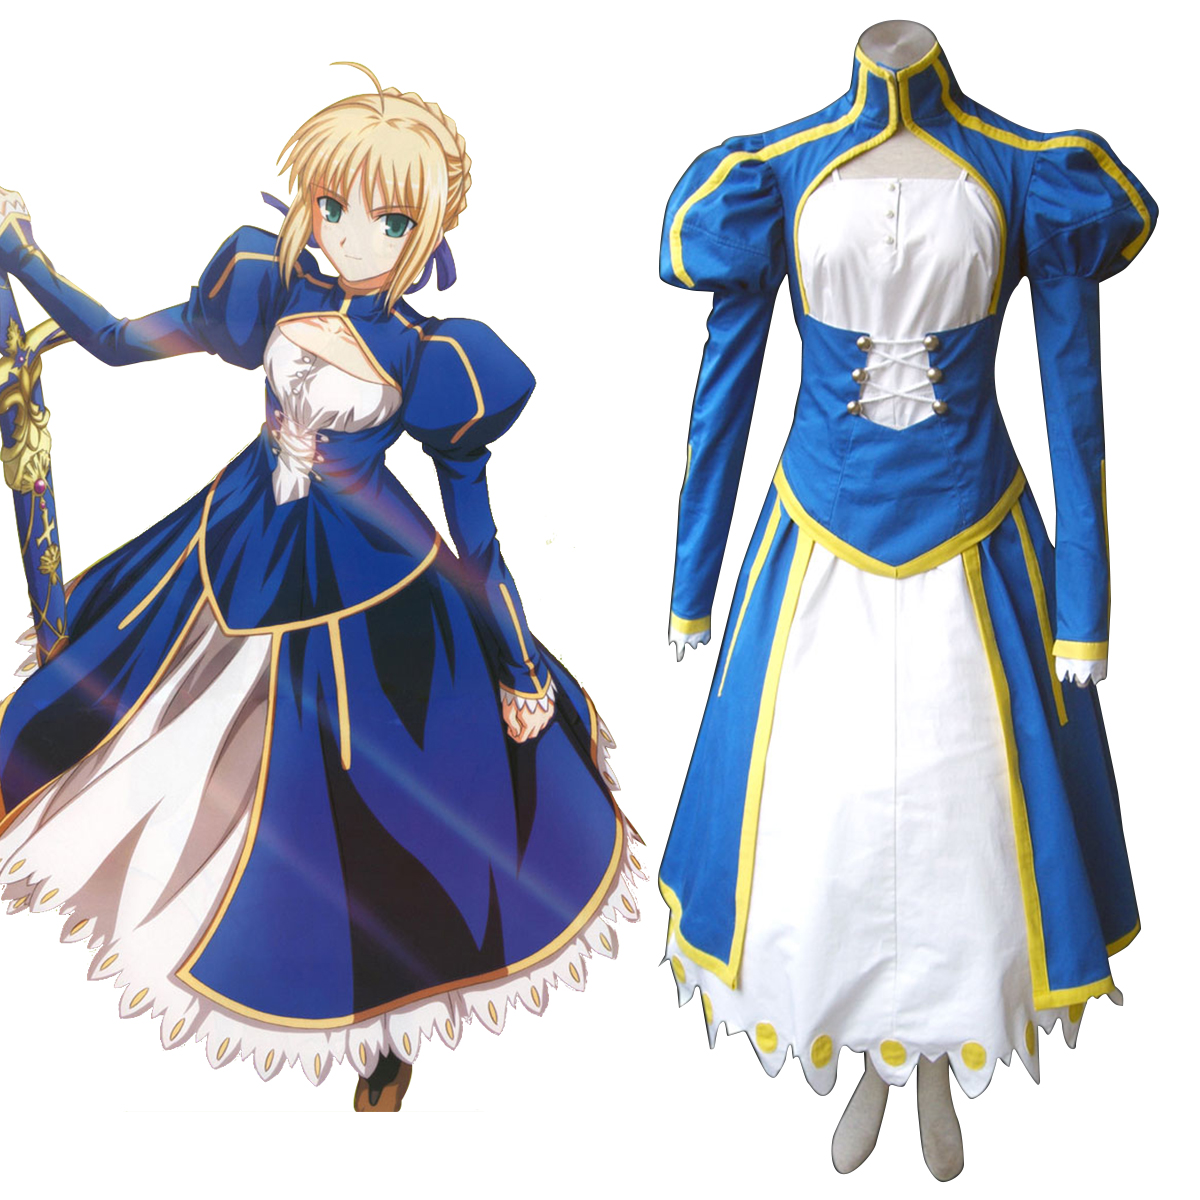 The Holy Grail War Saber 1 Blue Anime Cosplay Costumes Outfit